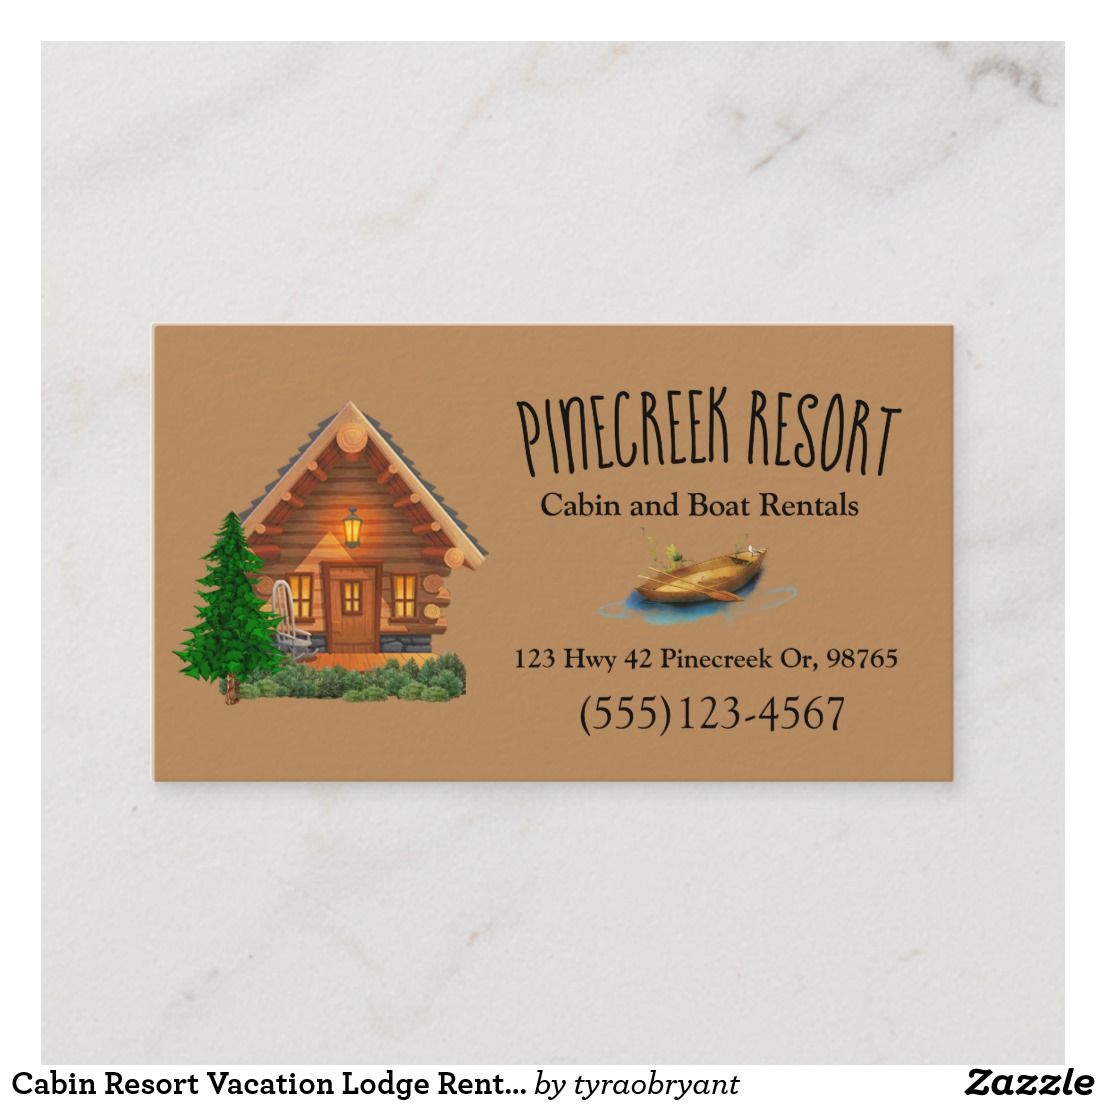 Cabin Resort Vacation Lodge Rental Business Card Zazzle